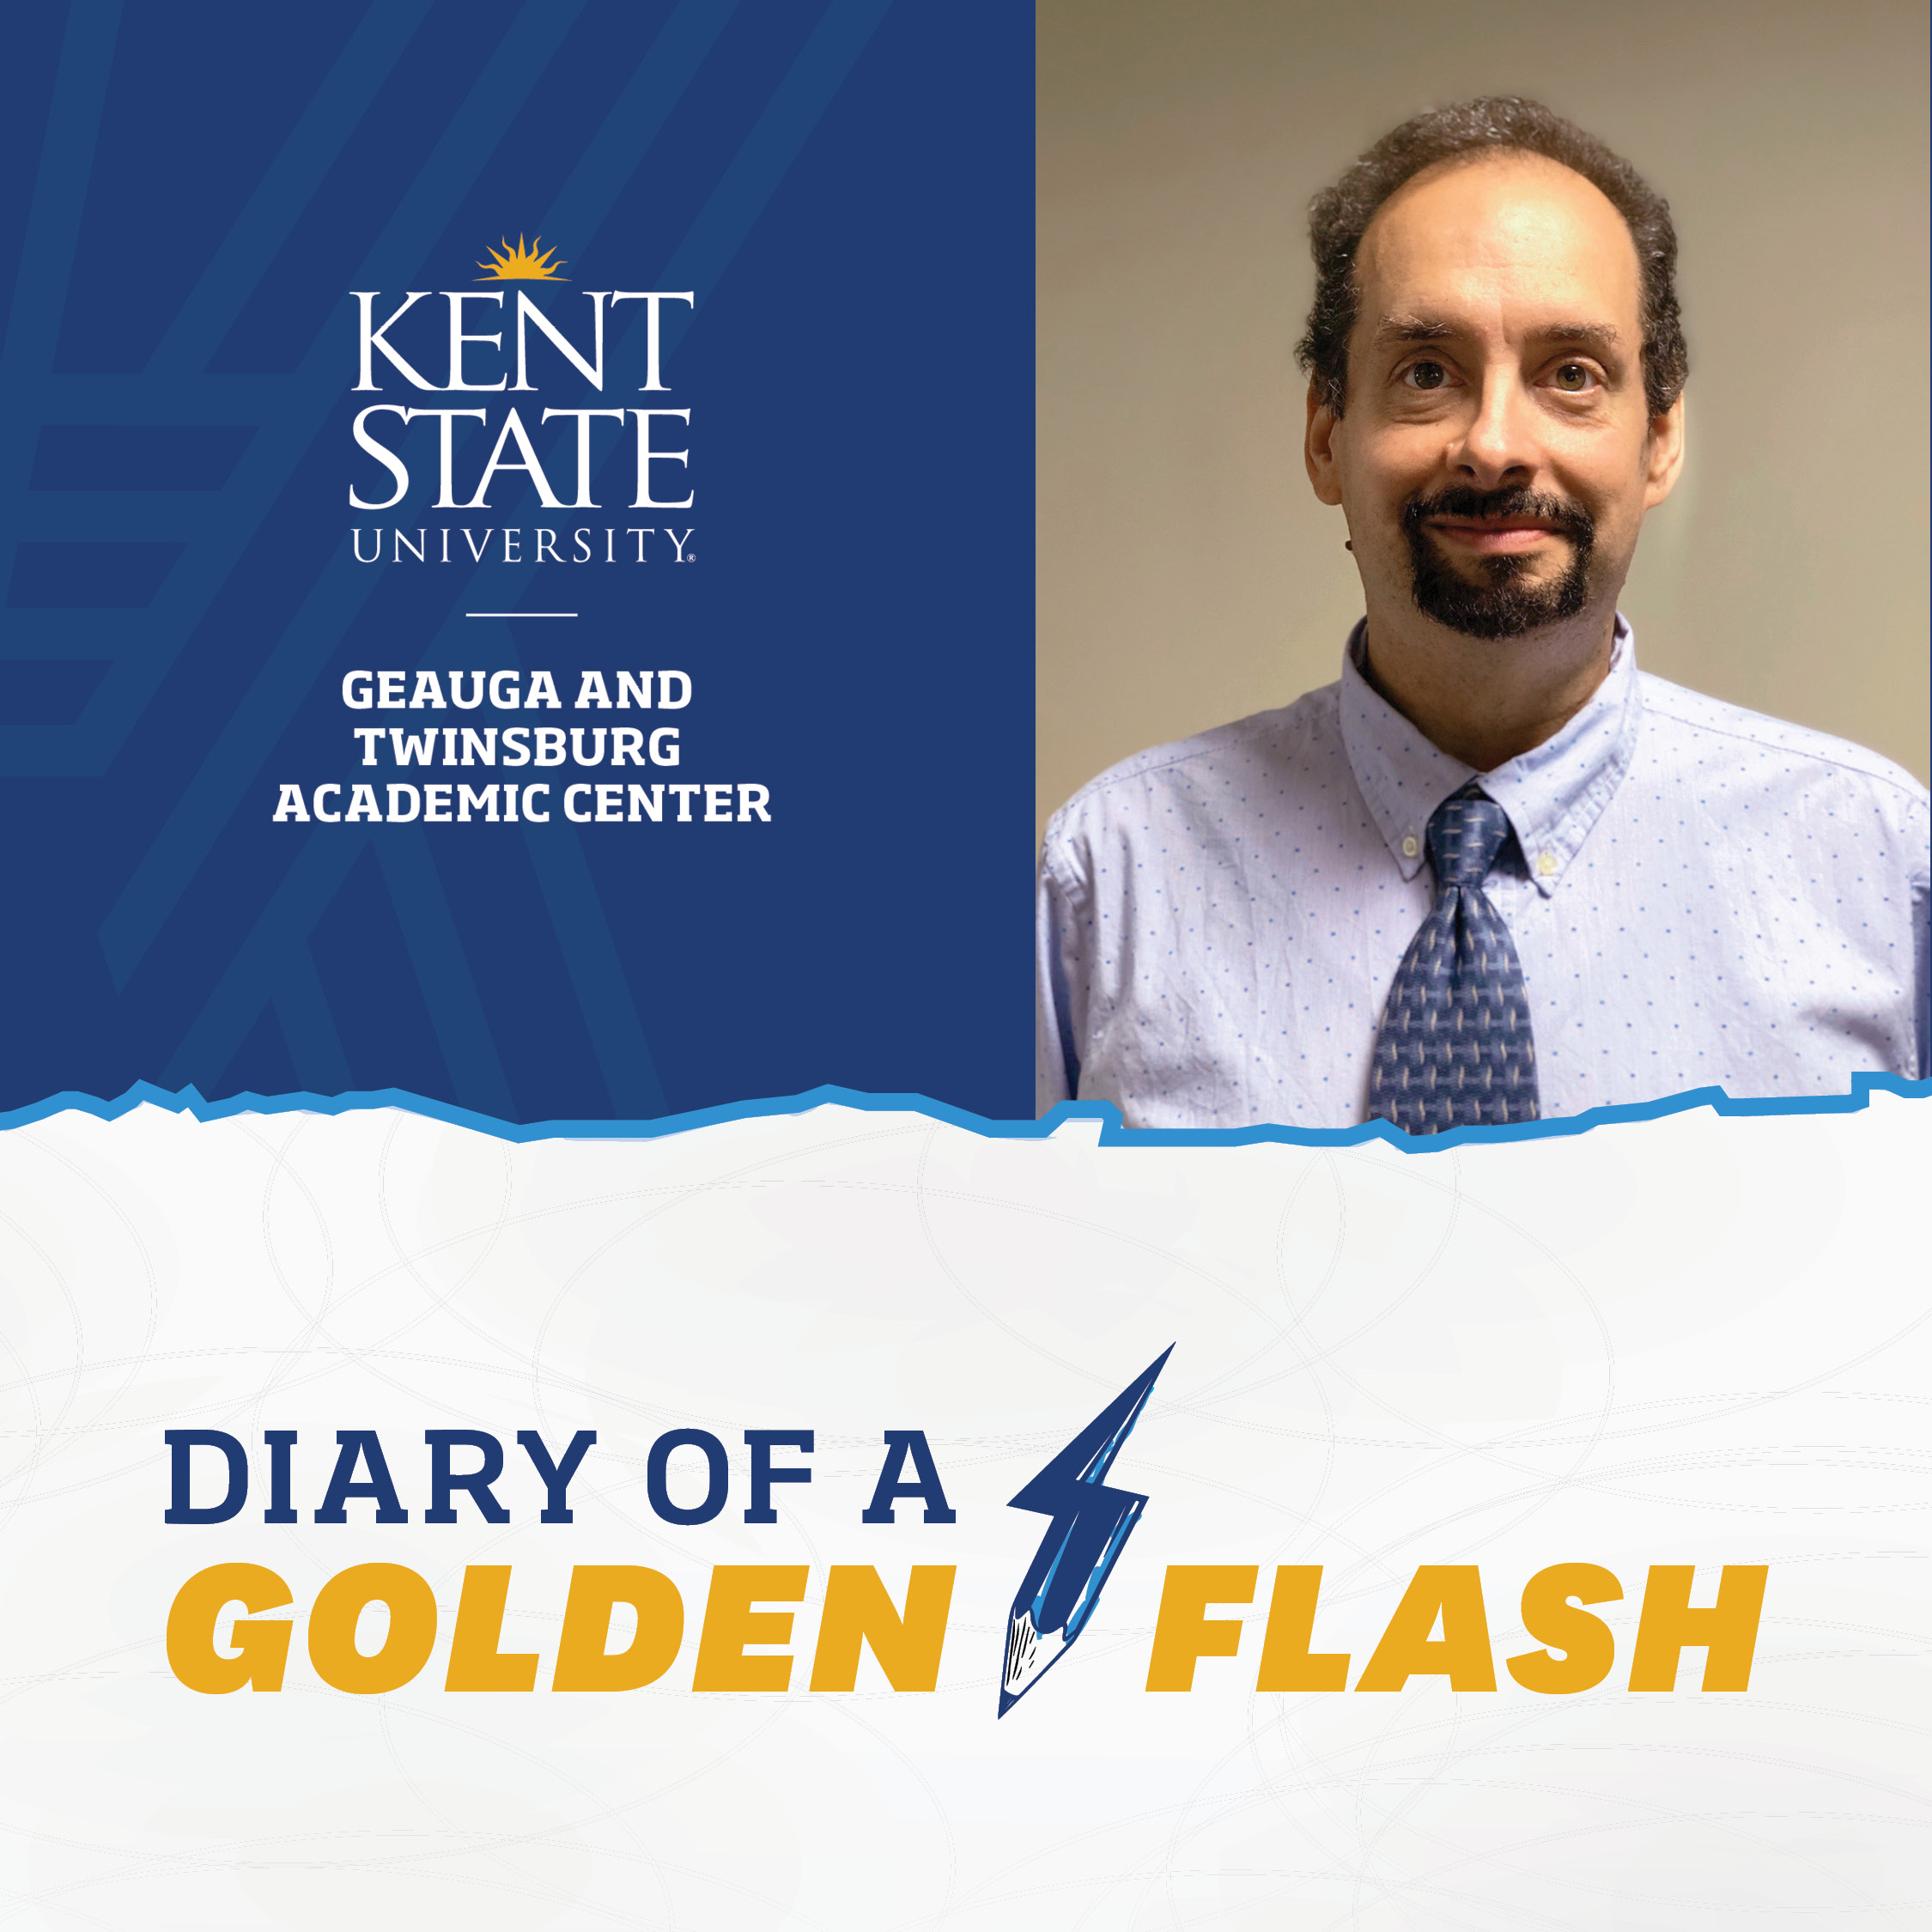 Diary of a Golden Flash Jeremi Weidner